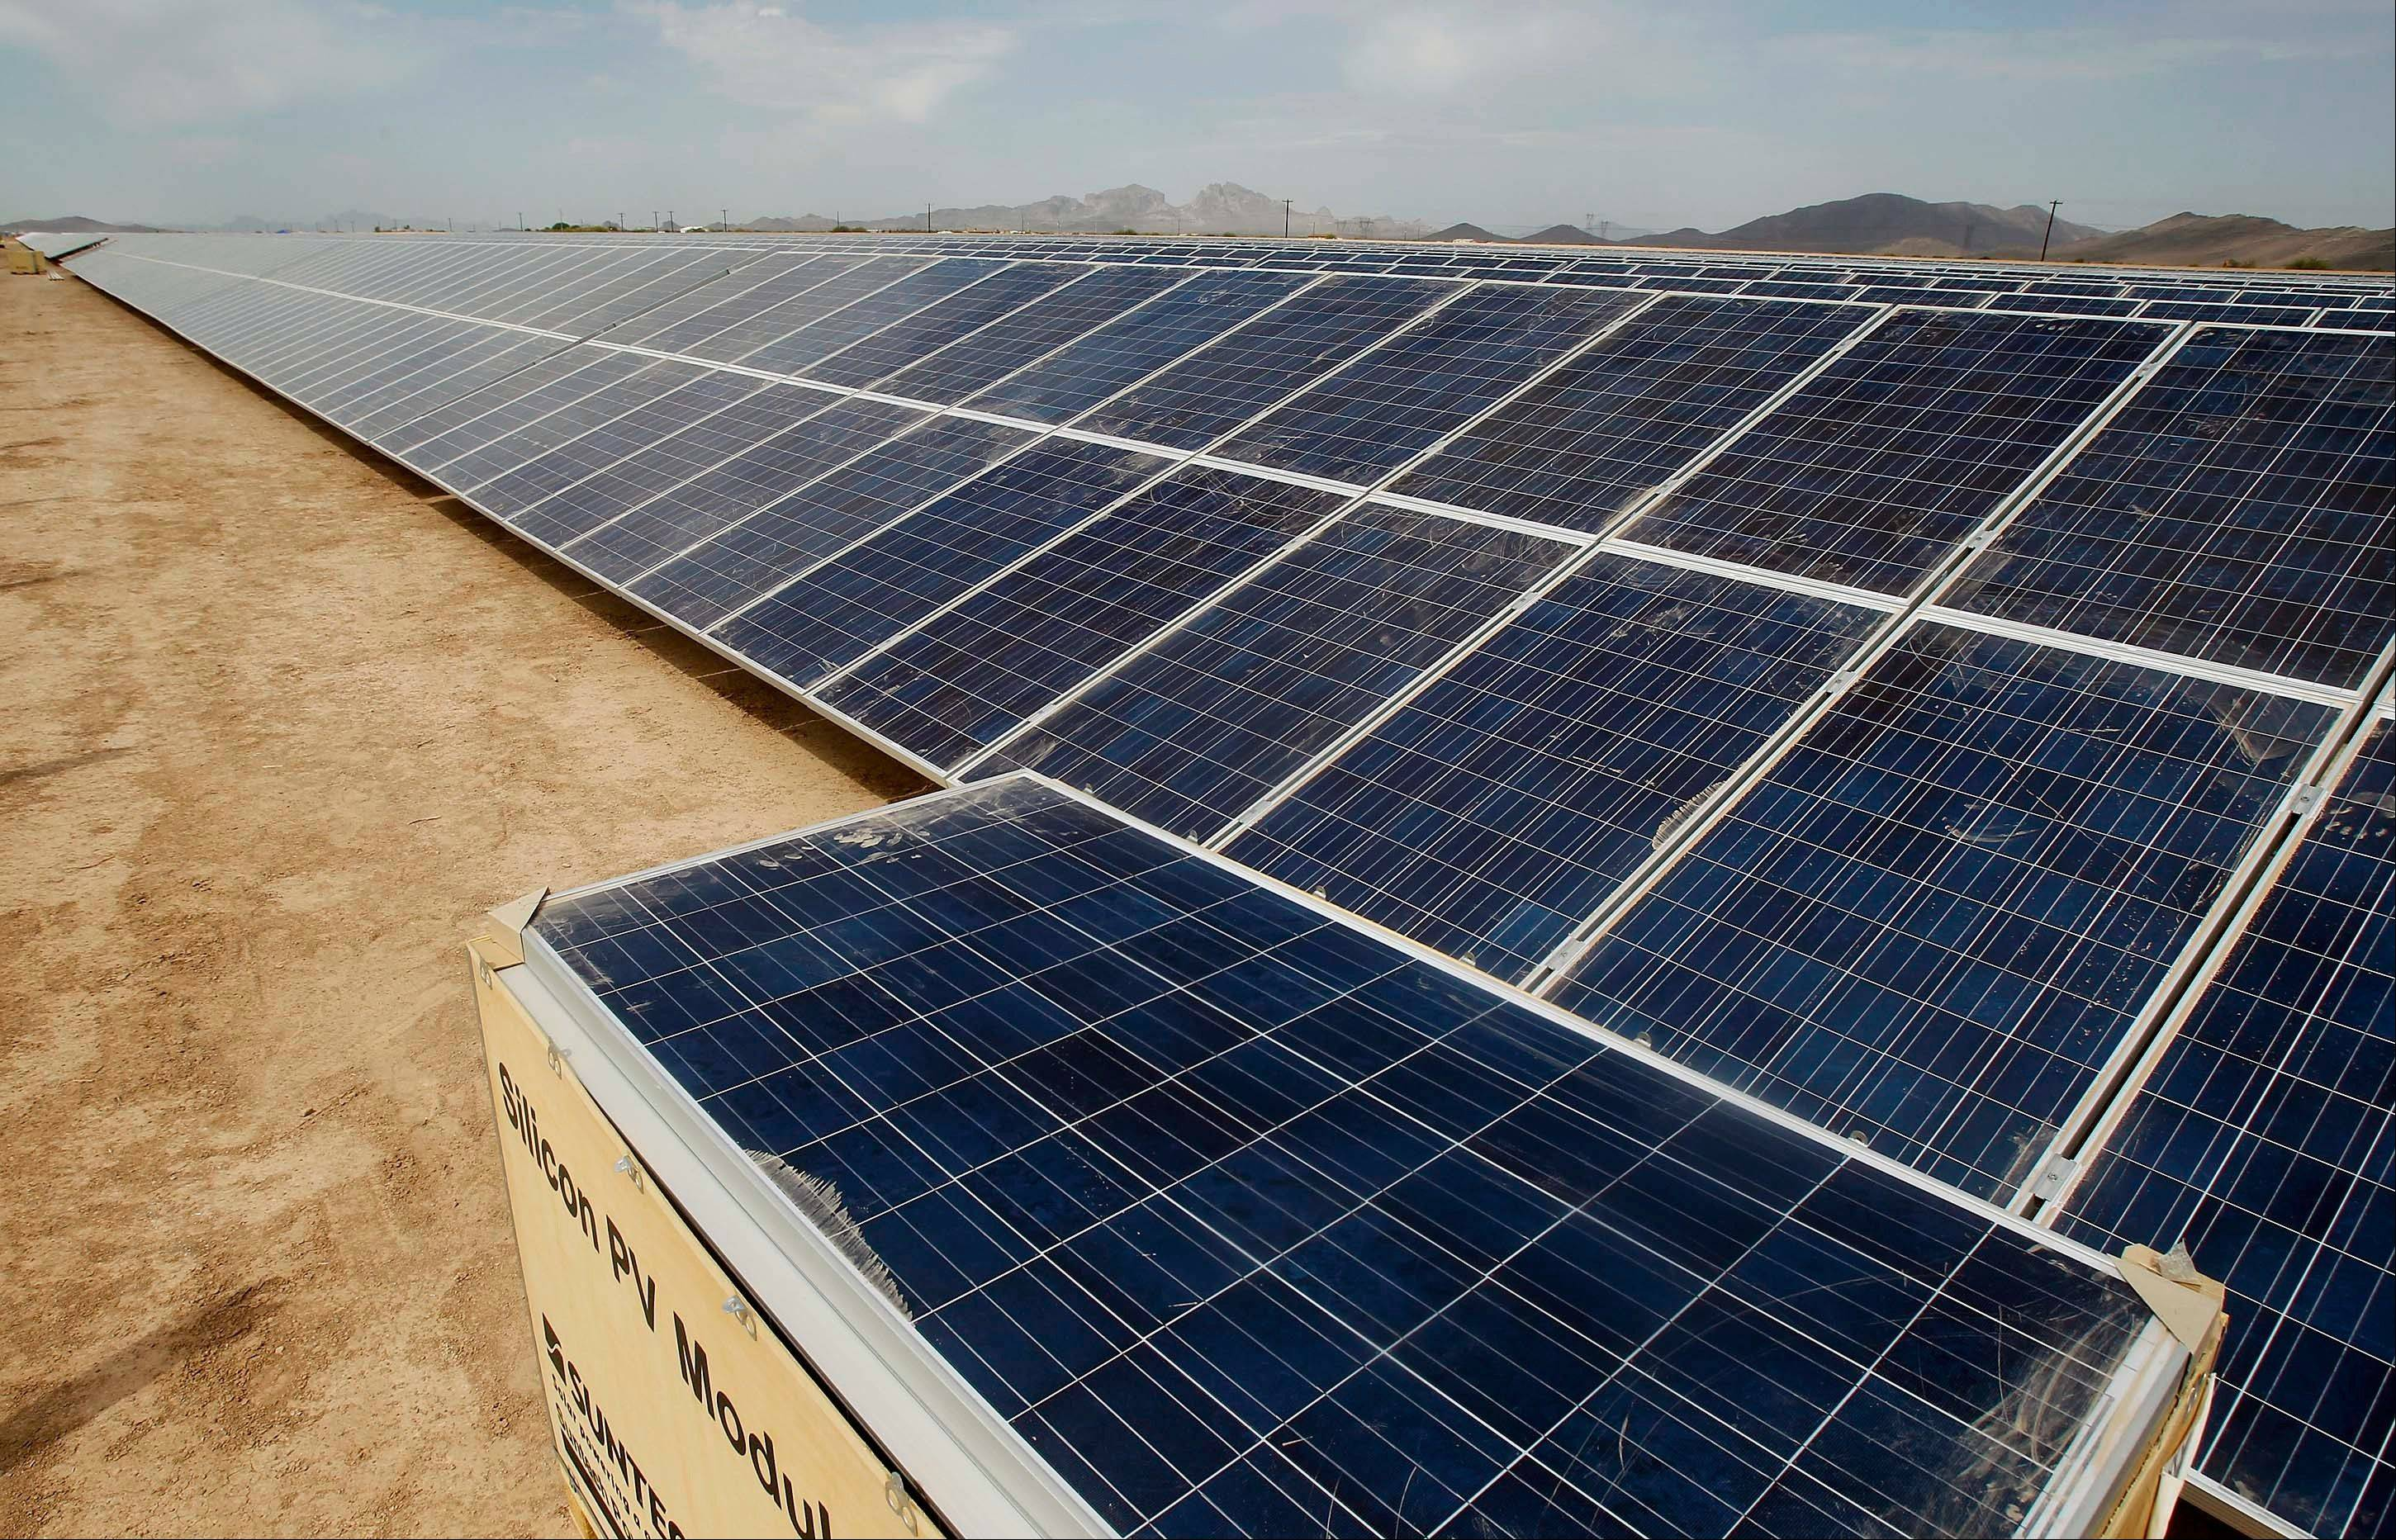 Solar panel installation is seen at the Mesquite Solar 1 facility in Arlington, Ariz. Even as renewable power projects get a boost from the federal government, there's a tangle of complications preventing states like New Mexico and Arizona from converting the obvious potential into real watts.